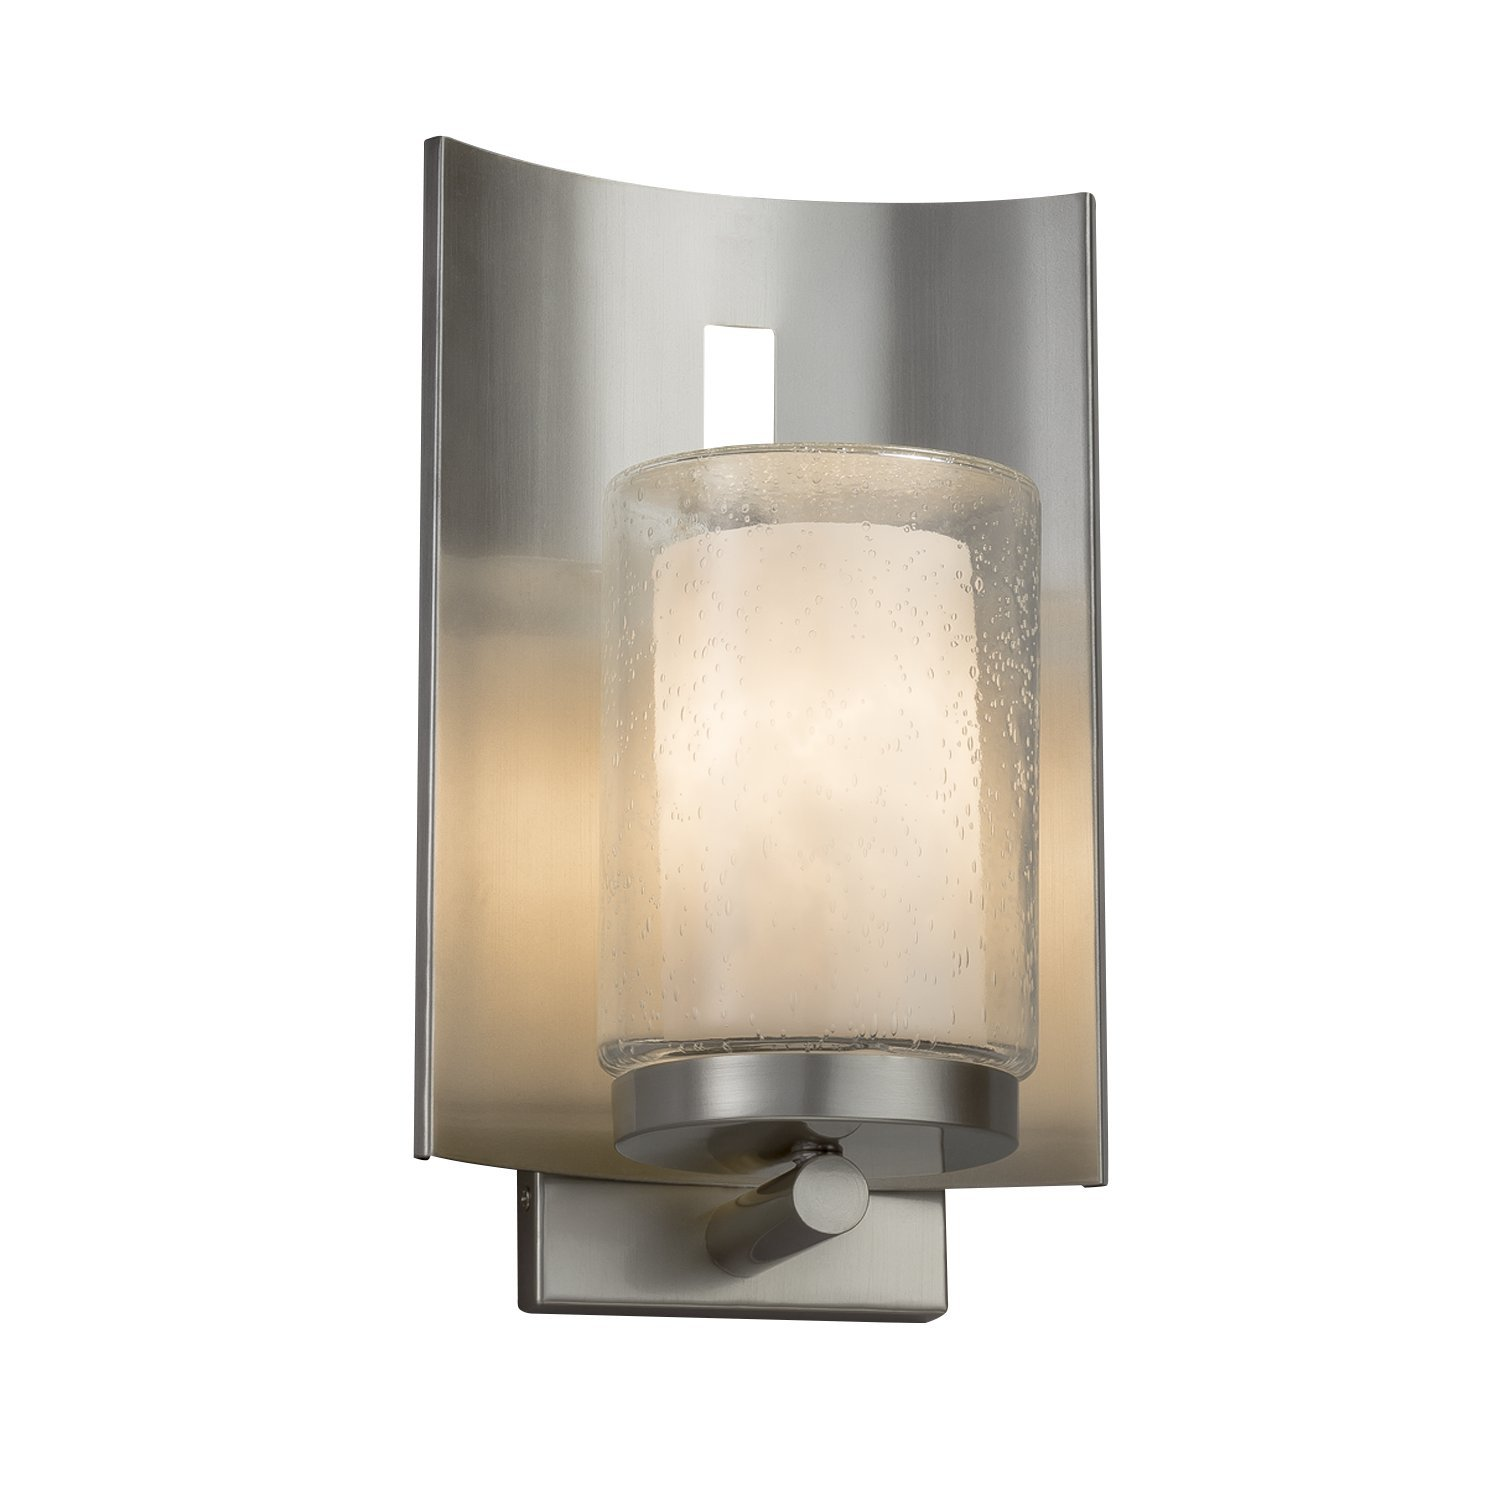 Clouds embark 1 light outdoor wall sconce cylinder with flat rim